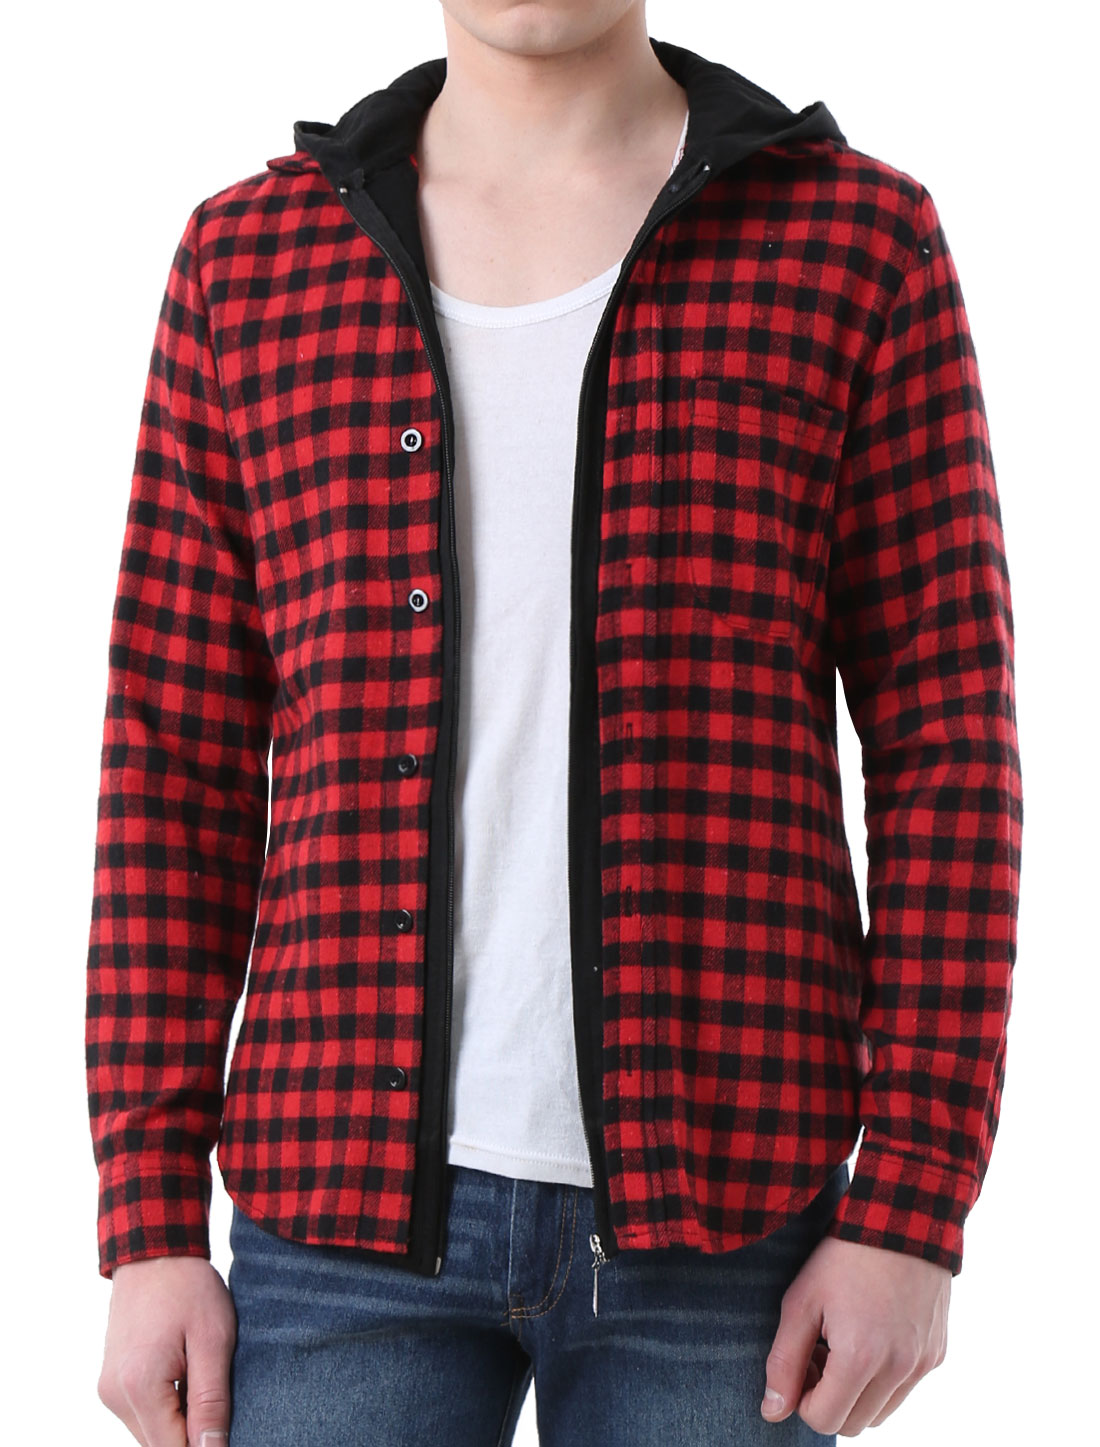 Men Leisure Contrast Check Pattern Round Hem Hooded Shirt Black Red L